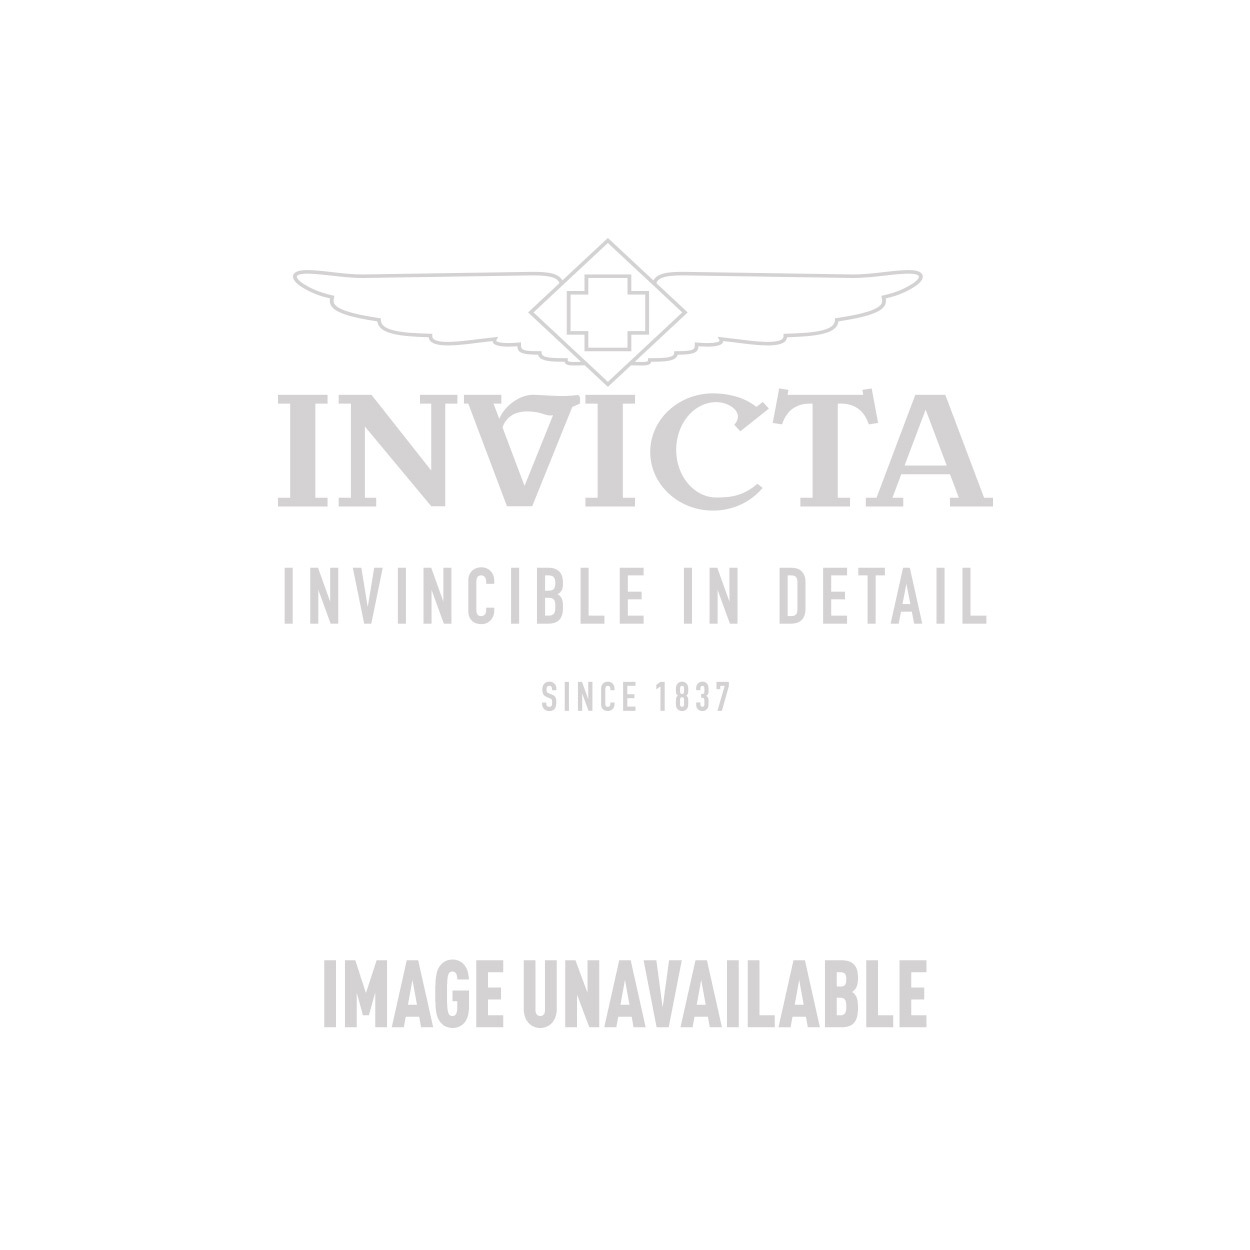 Invicta Bolt Swiss Made Quartz Watch - Blue, Stainless Steel case Stainless Steel band - Model 17161